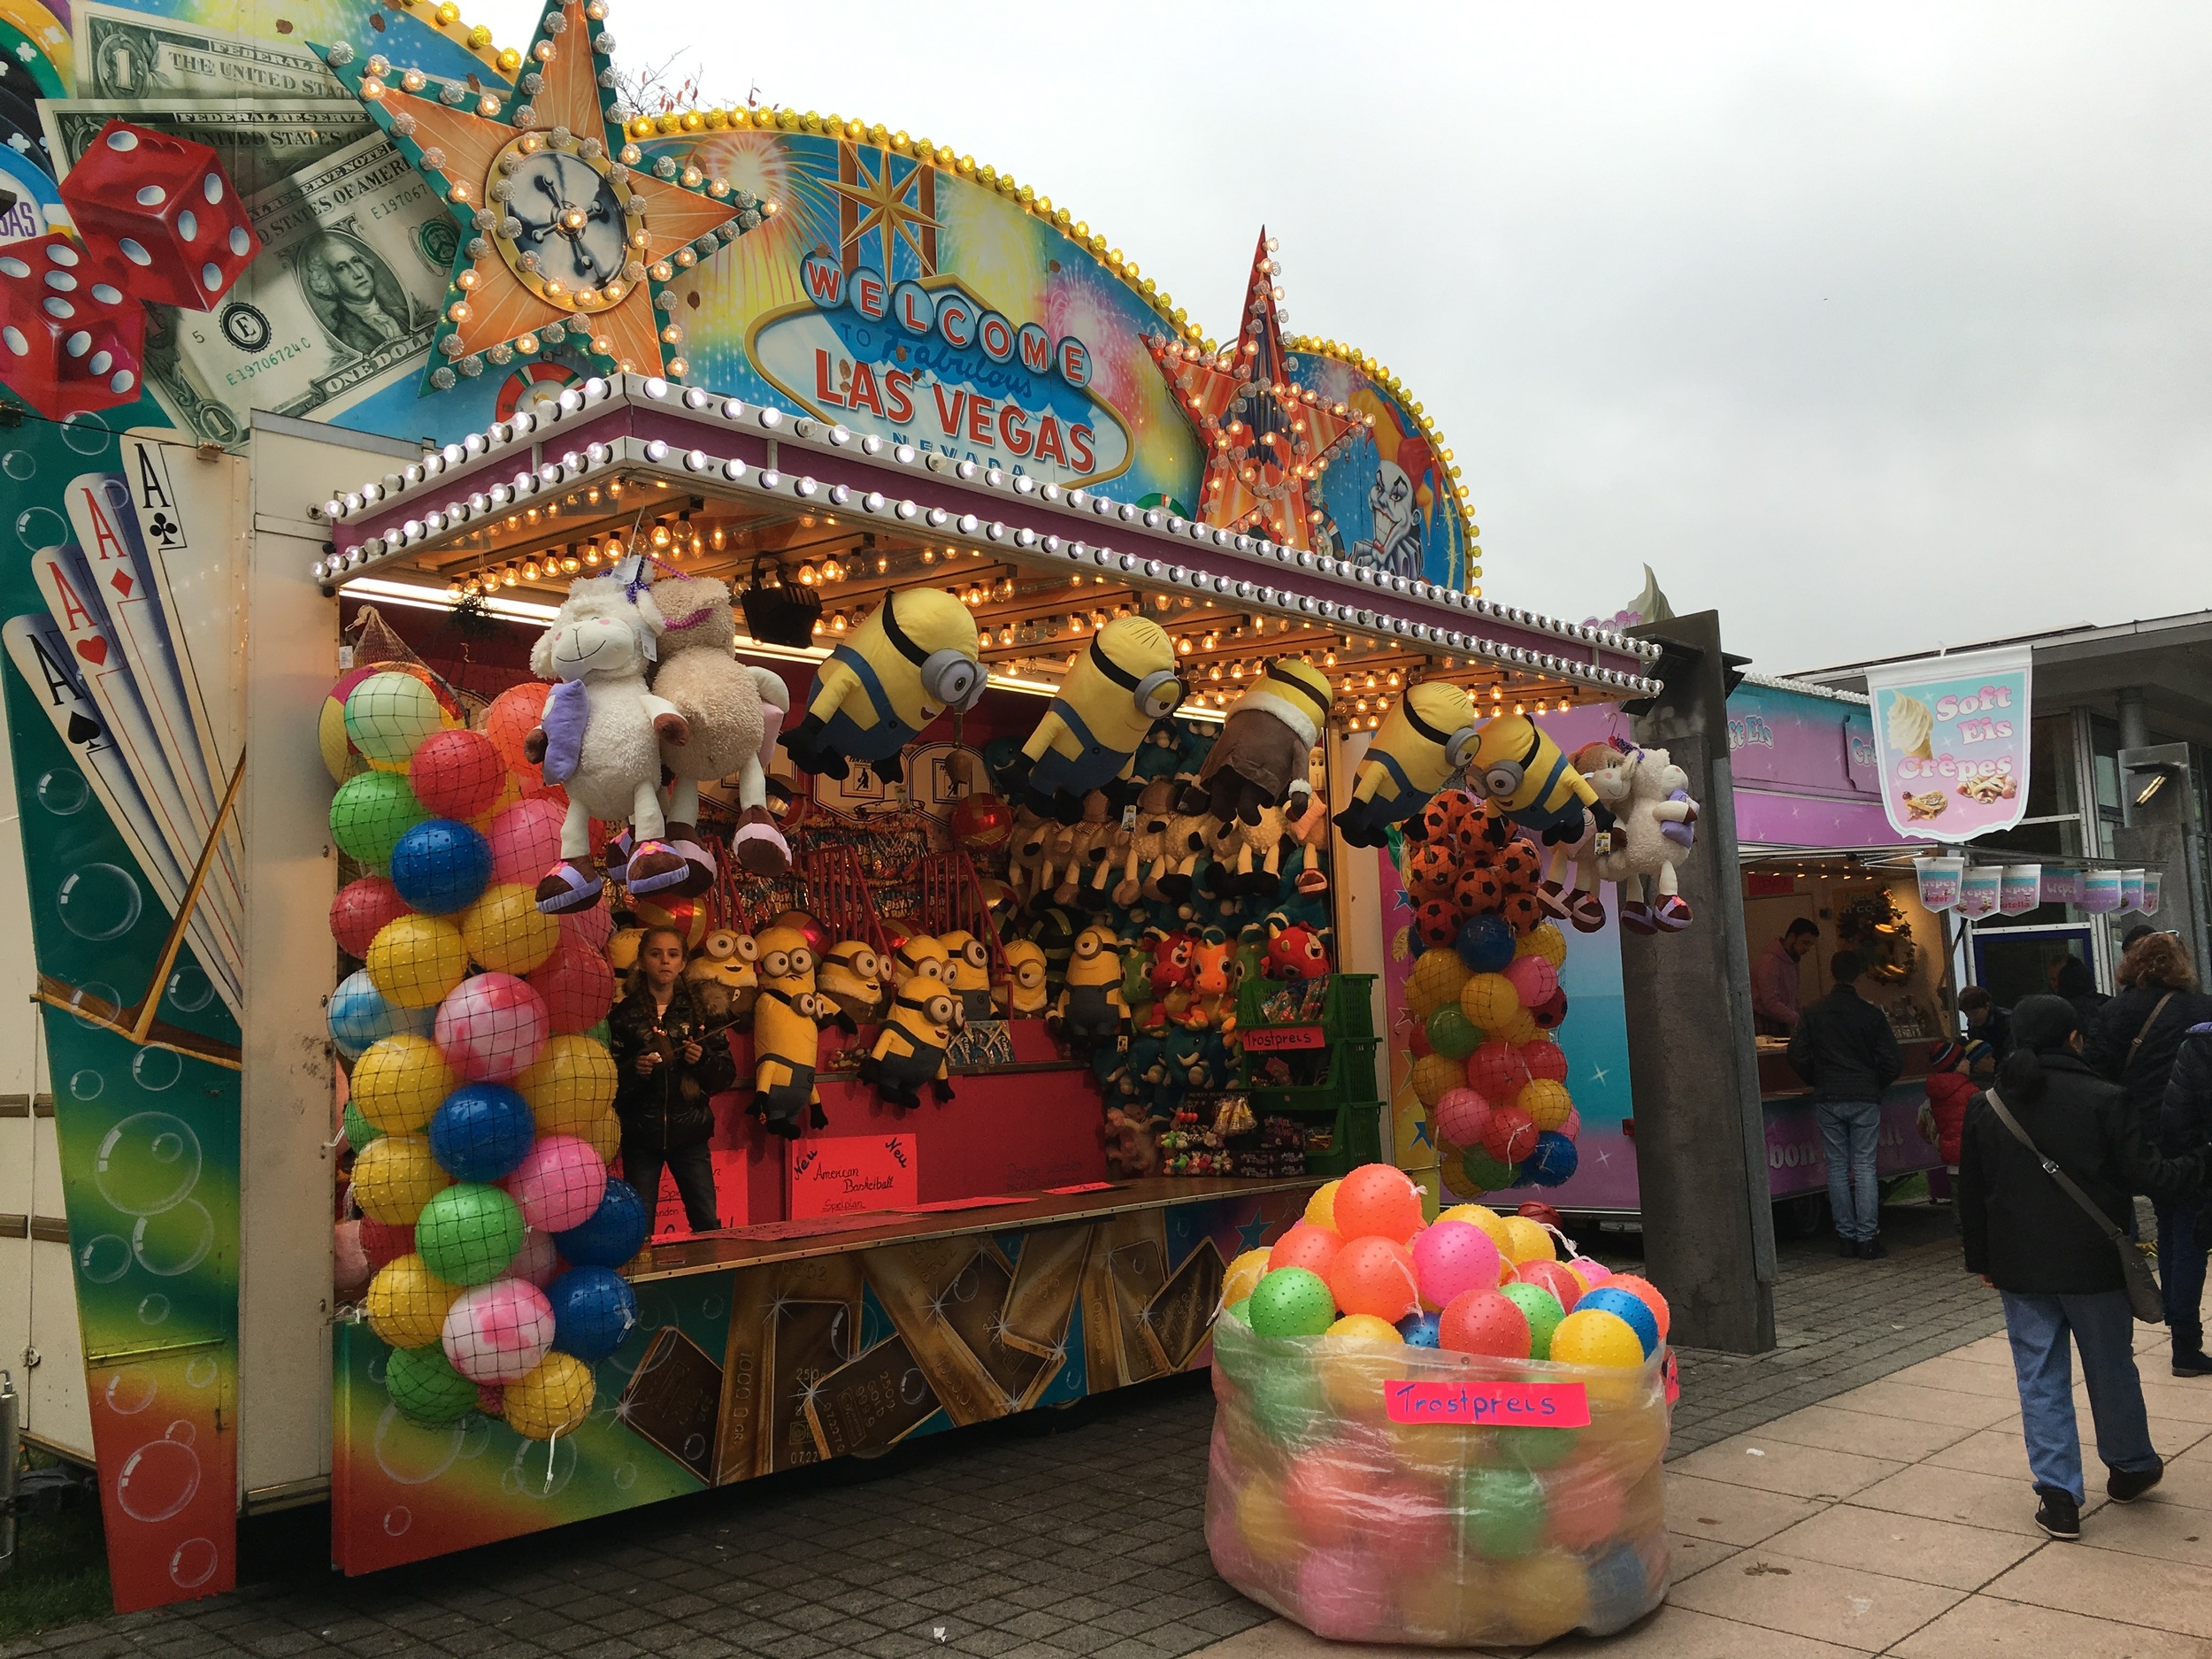 American-style carnival games